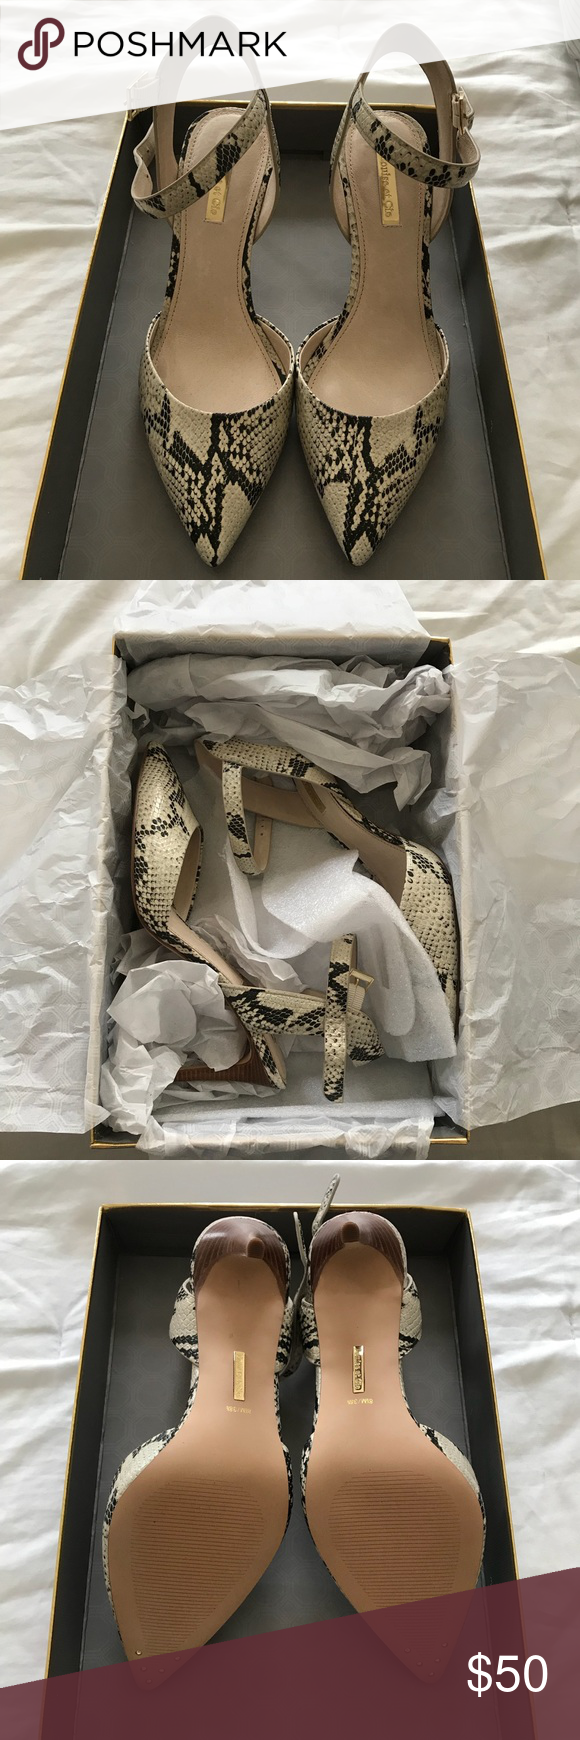 """d207c89fff52 Louise et Cie Lo-Kota Heels Snake print leather heels with """"natural"""" base.  Purchased at Nordstrom and only worn to try on. New in box size 8.5."""